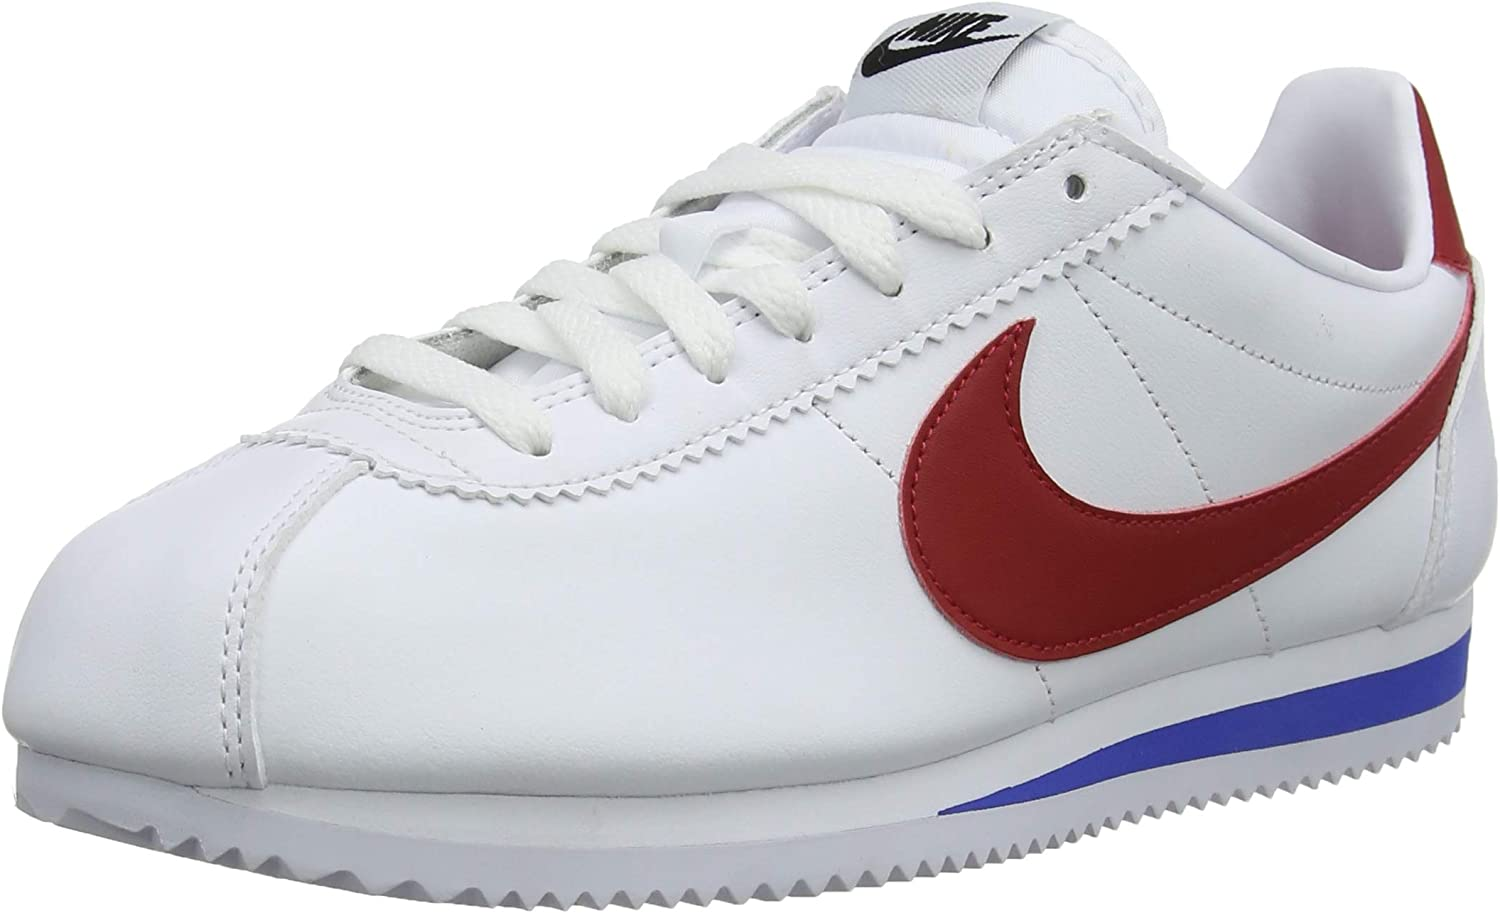 fantastic savings hot sales authentic quality Nike - Classic Cortez Leather - Baskets - Femme: Amazon.fr ...